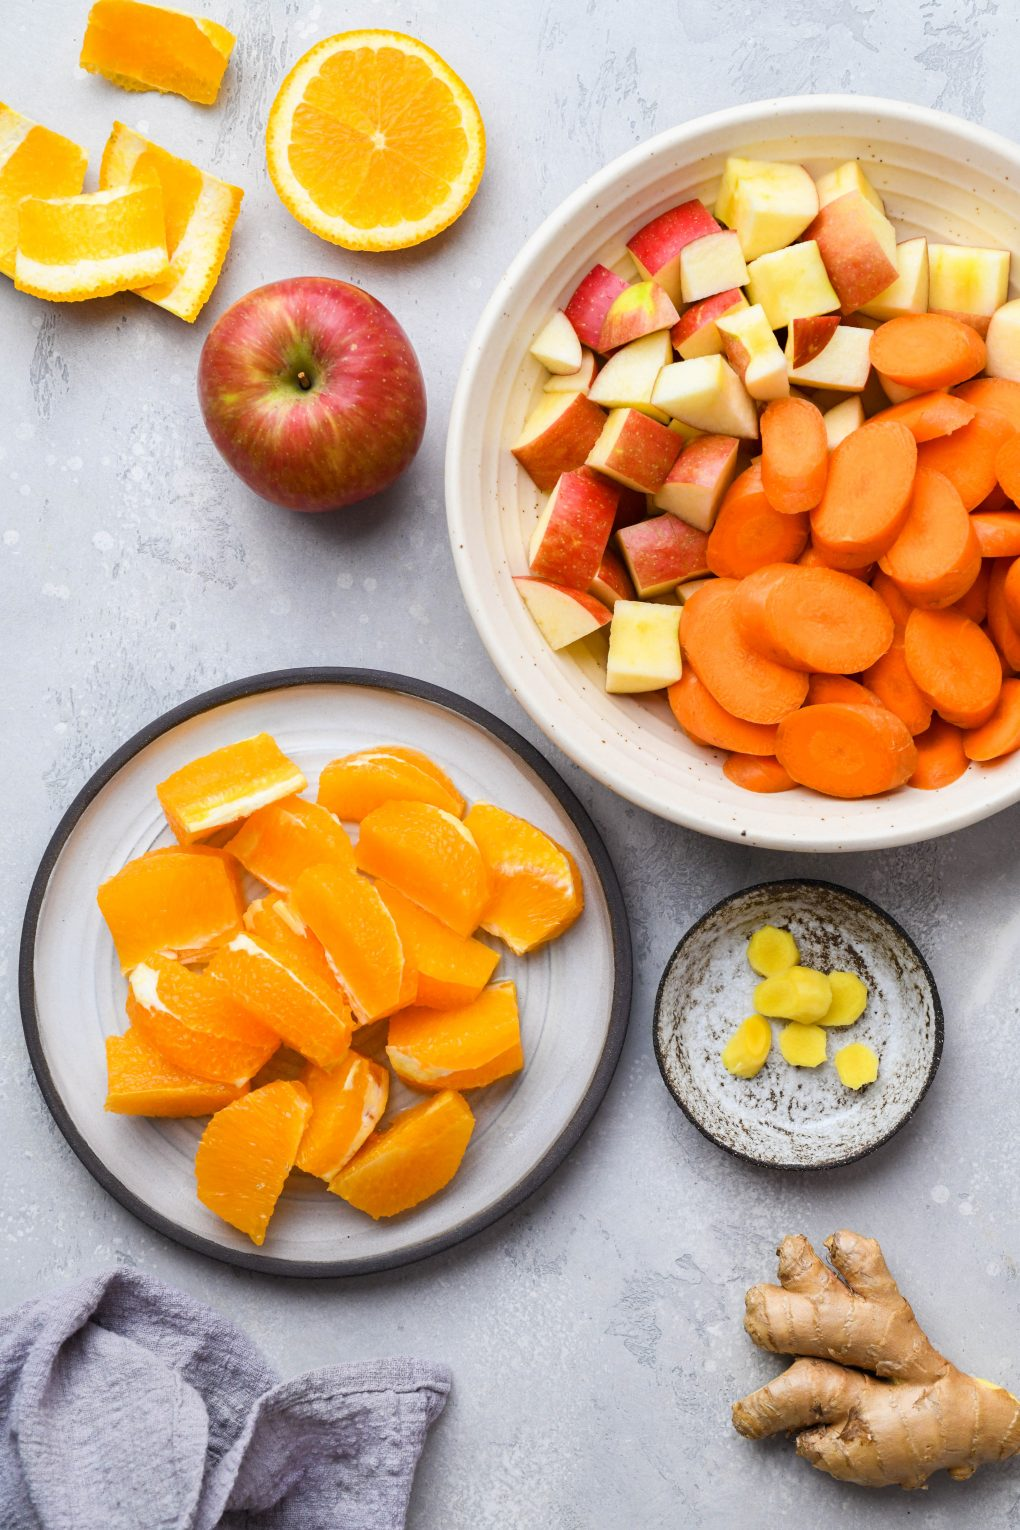 Overhead image for the ingredients used to make carrot, apple, orange juice with ginger. On a light colored background.